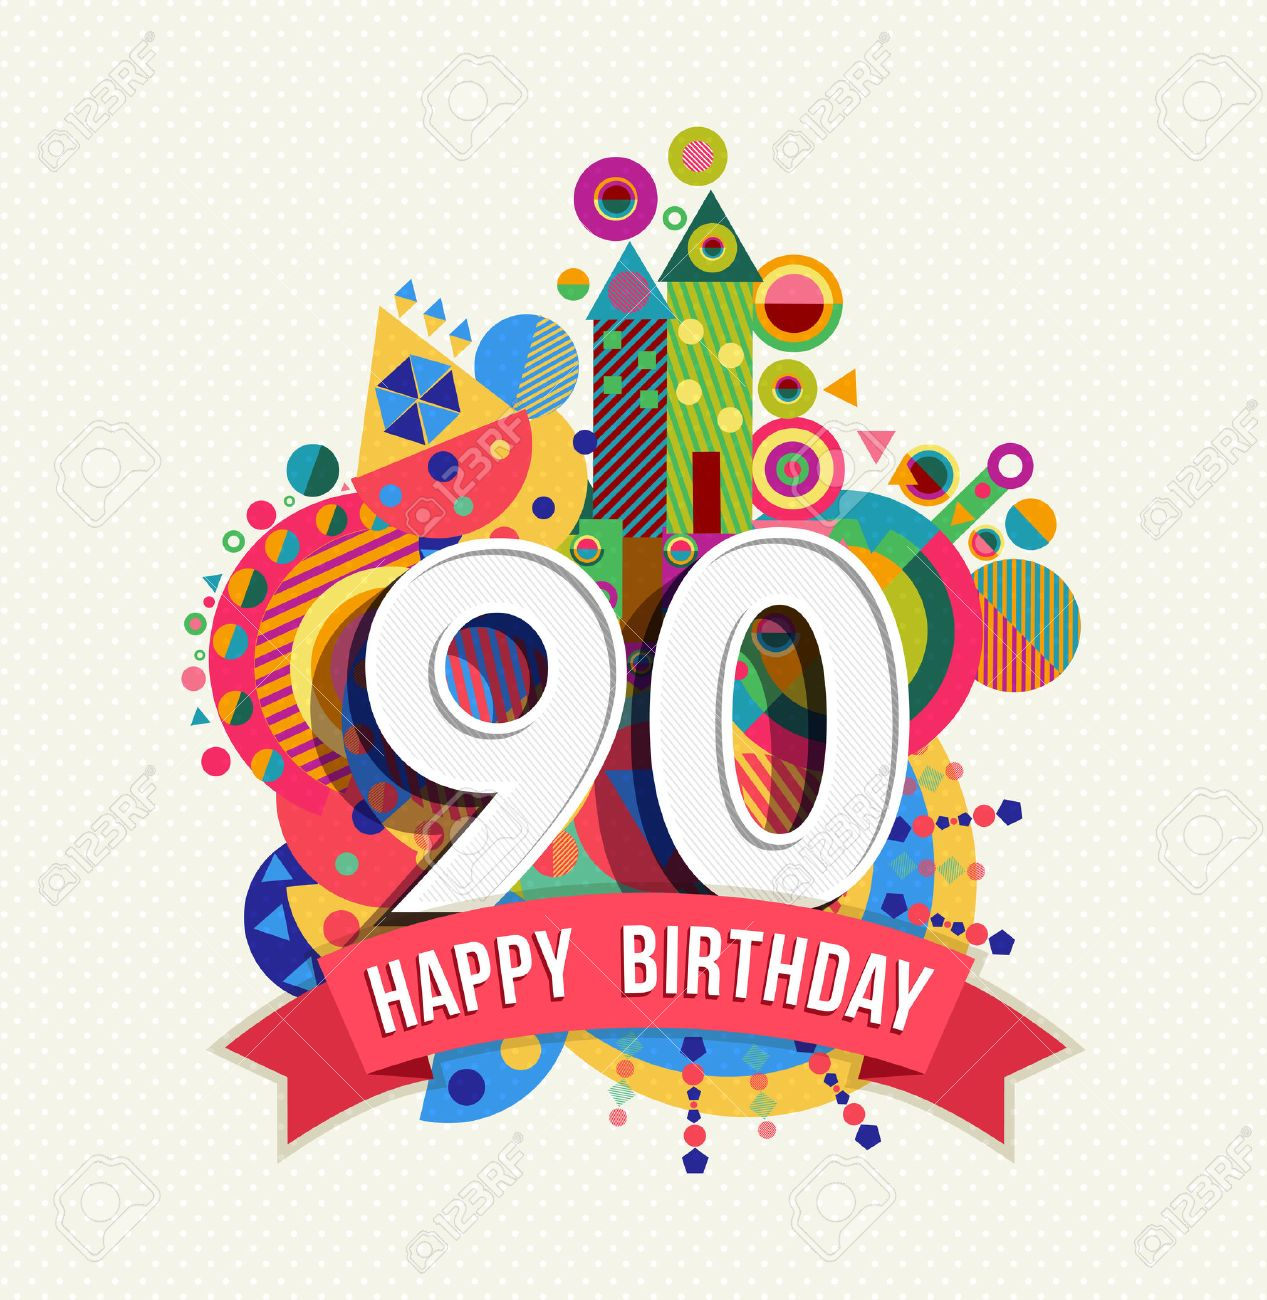 Happy Birthday ninety 90 year, fun celebration greeting card with number,  text label and